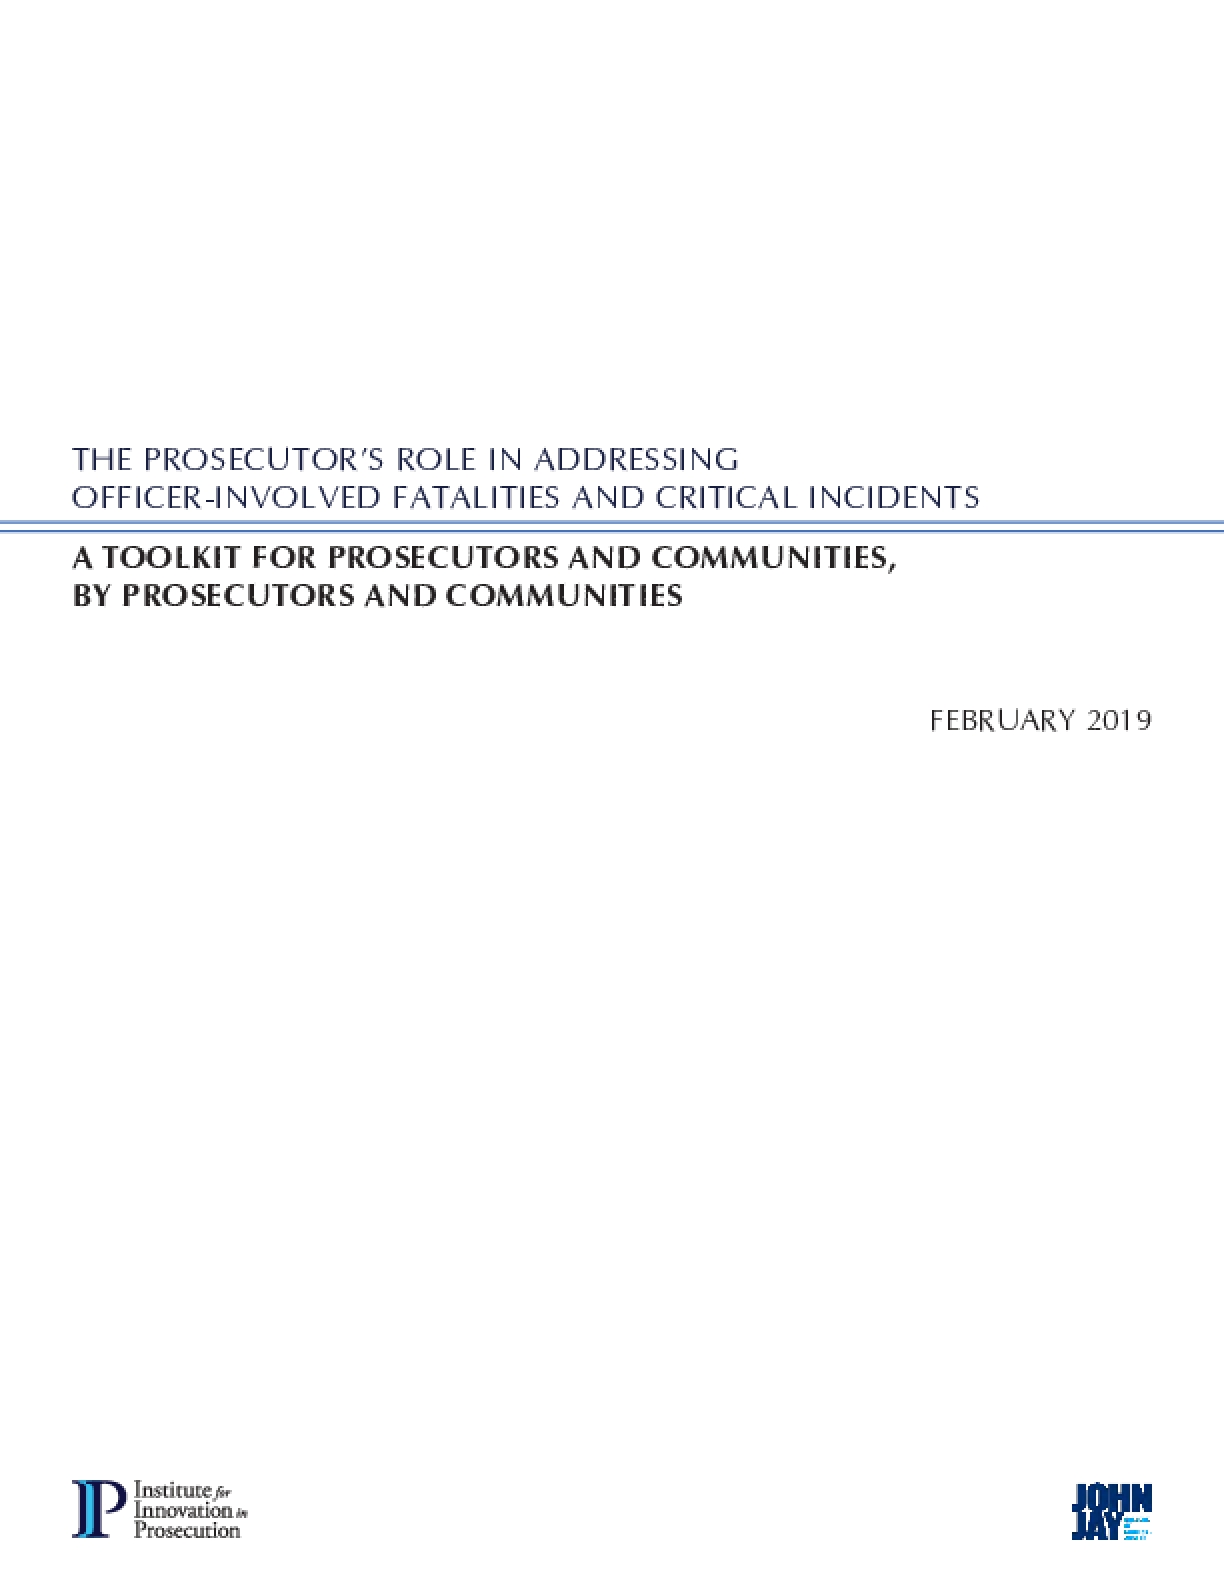 The Prosecutor's Role in Addressing Officer-Involved Fatalities and Critical Incidents: A Toolkit for Prosecutors and Communities, by Prosecutors and Communities